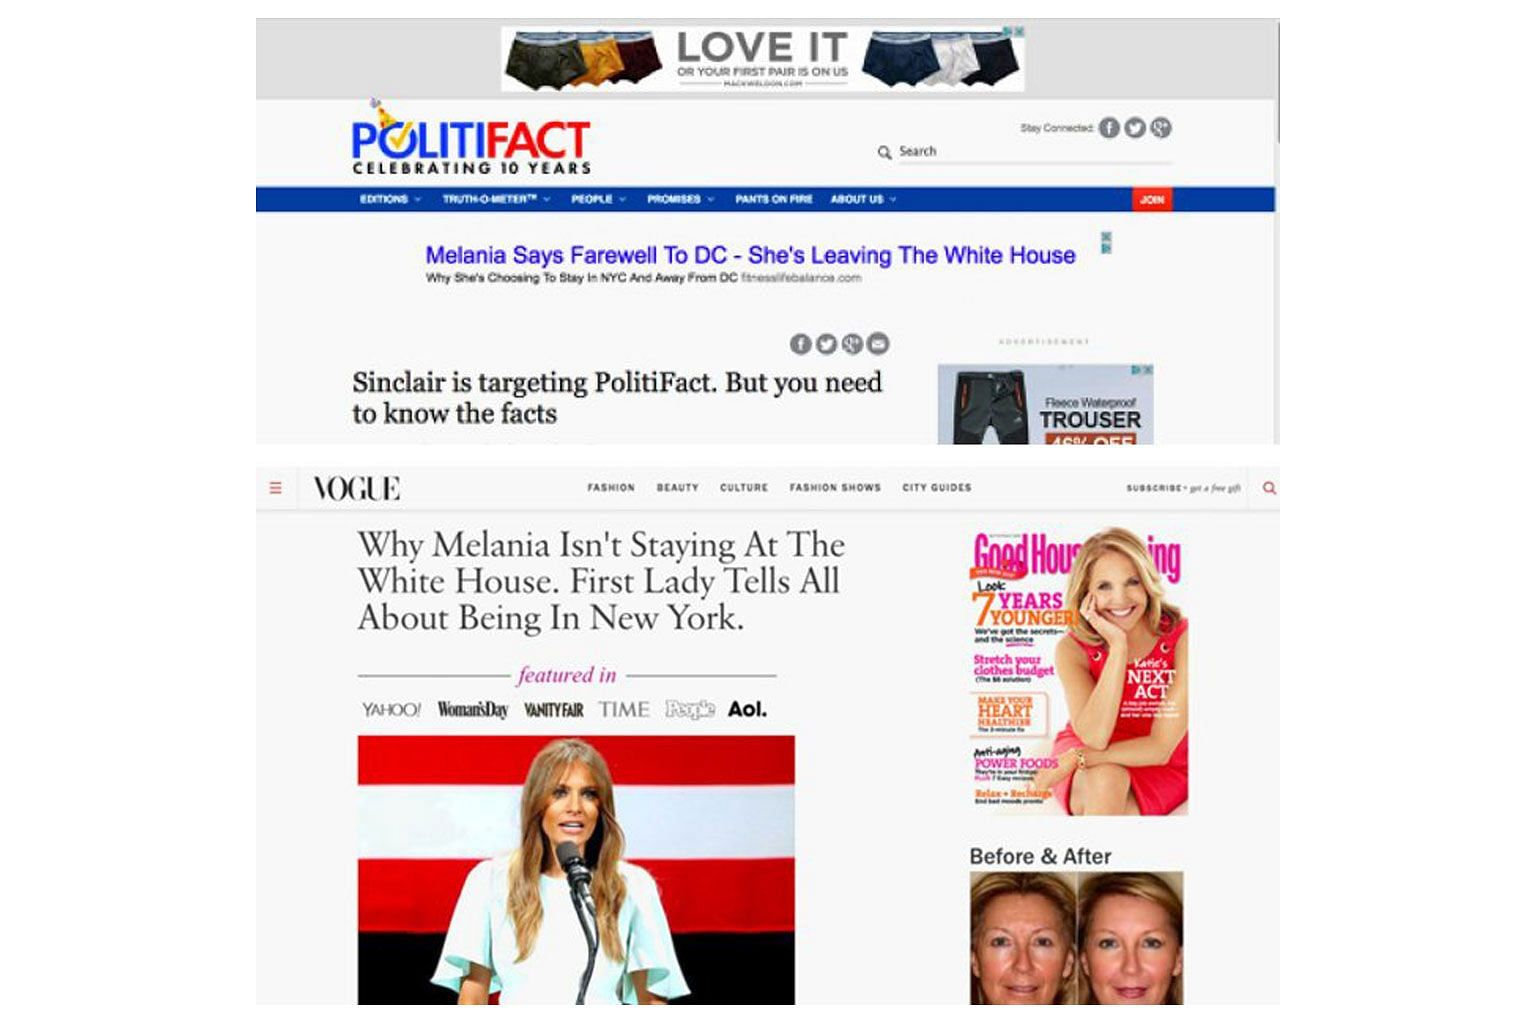 According to an examination by The New York Times, the enticing headlines in the fake news ads served as bait to draw readers to fraudulent websites that masqueraded as mainstream news sites, such as People and Vogue.